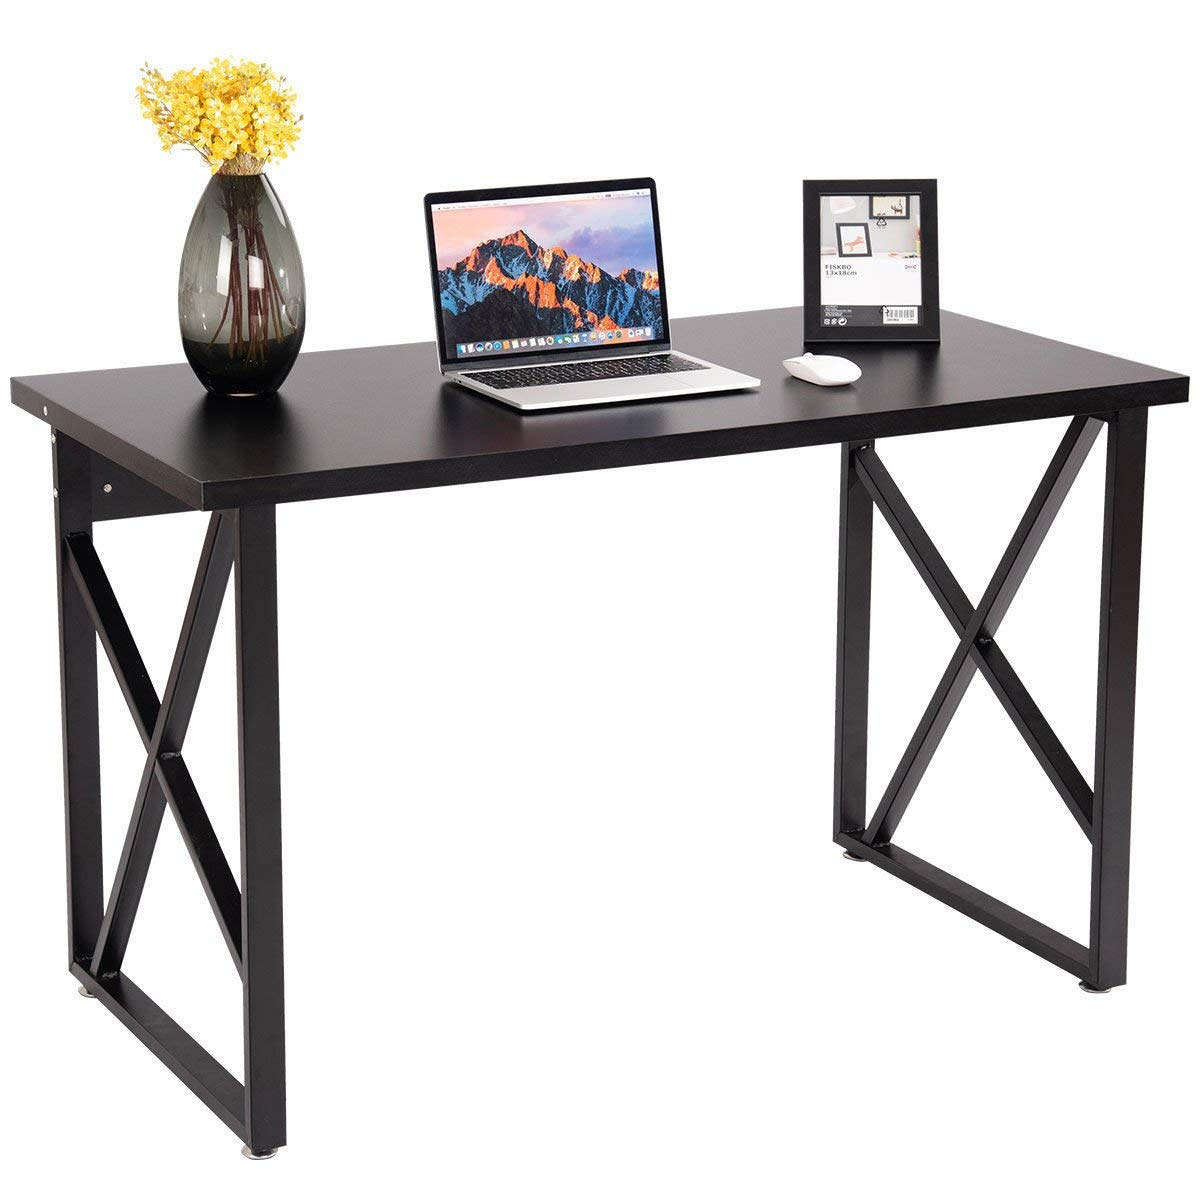 Tangkula Computer Desk PC Laptop Home Office Modern Simple Style Wood Study Workstation Writing Table Wooden Furniture Set (black desktop with black legs)